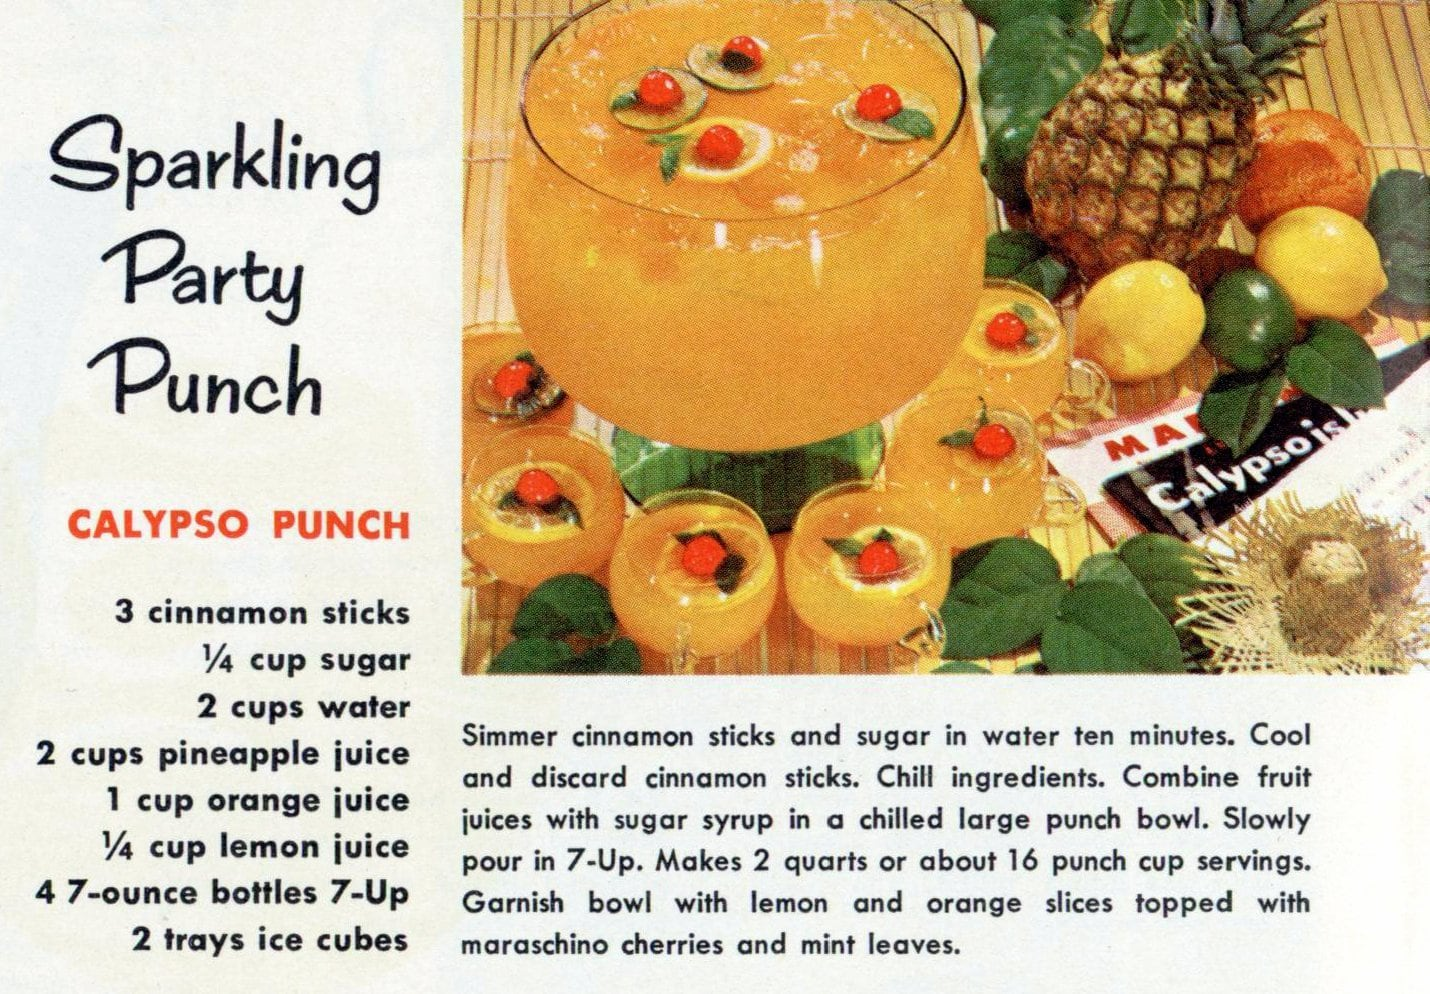 1960s recipe for Sparkling Party Punch with 7-UP